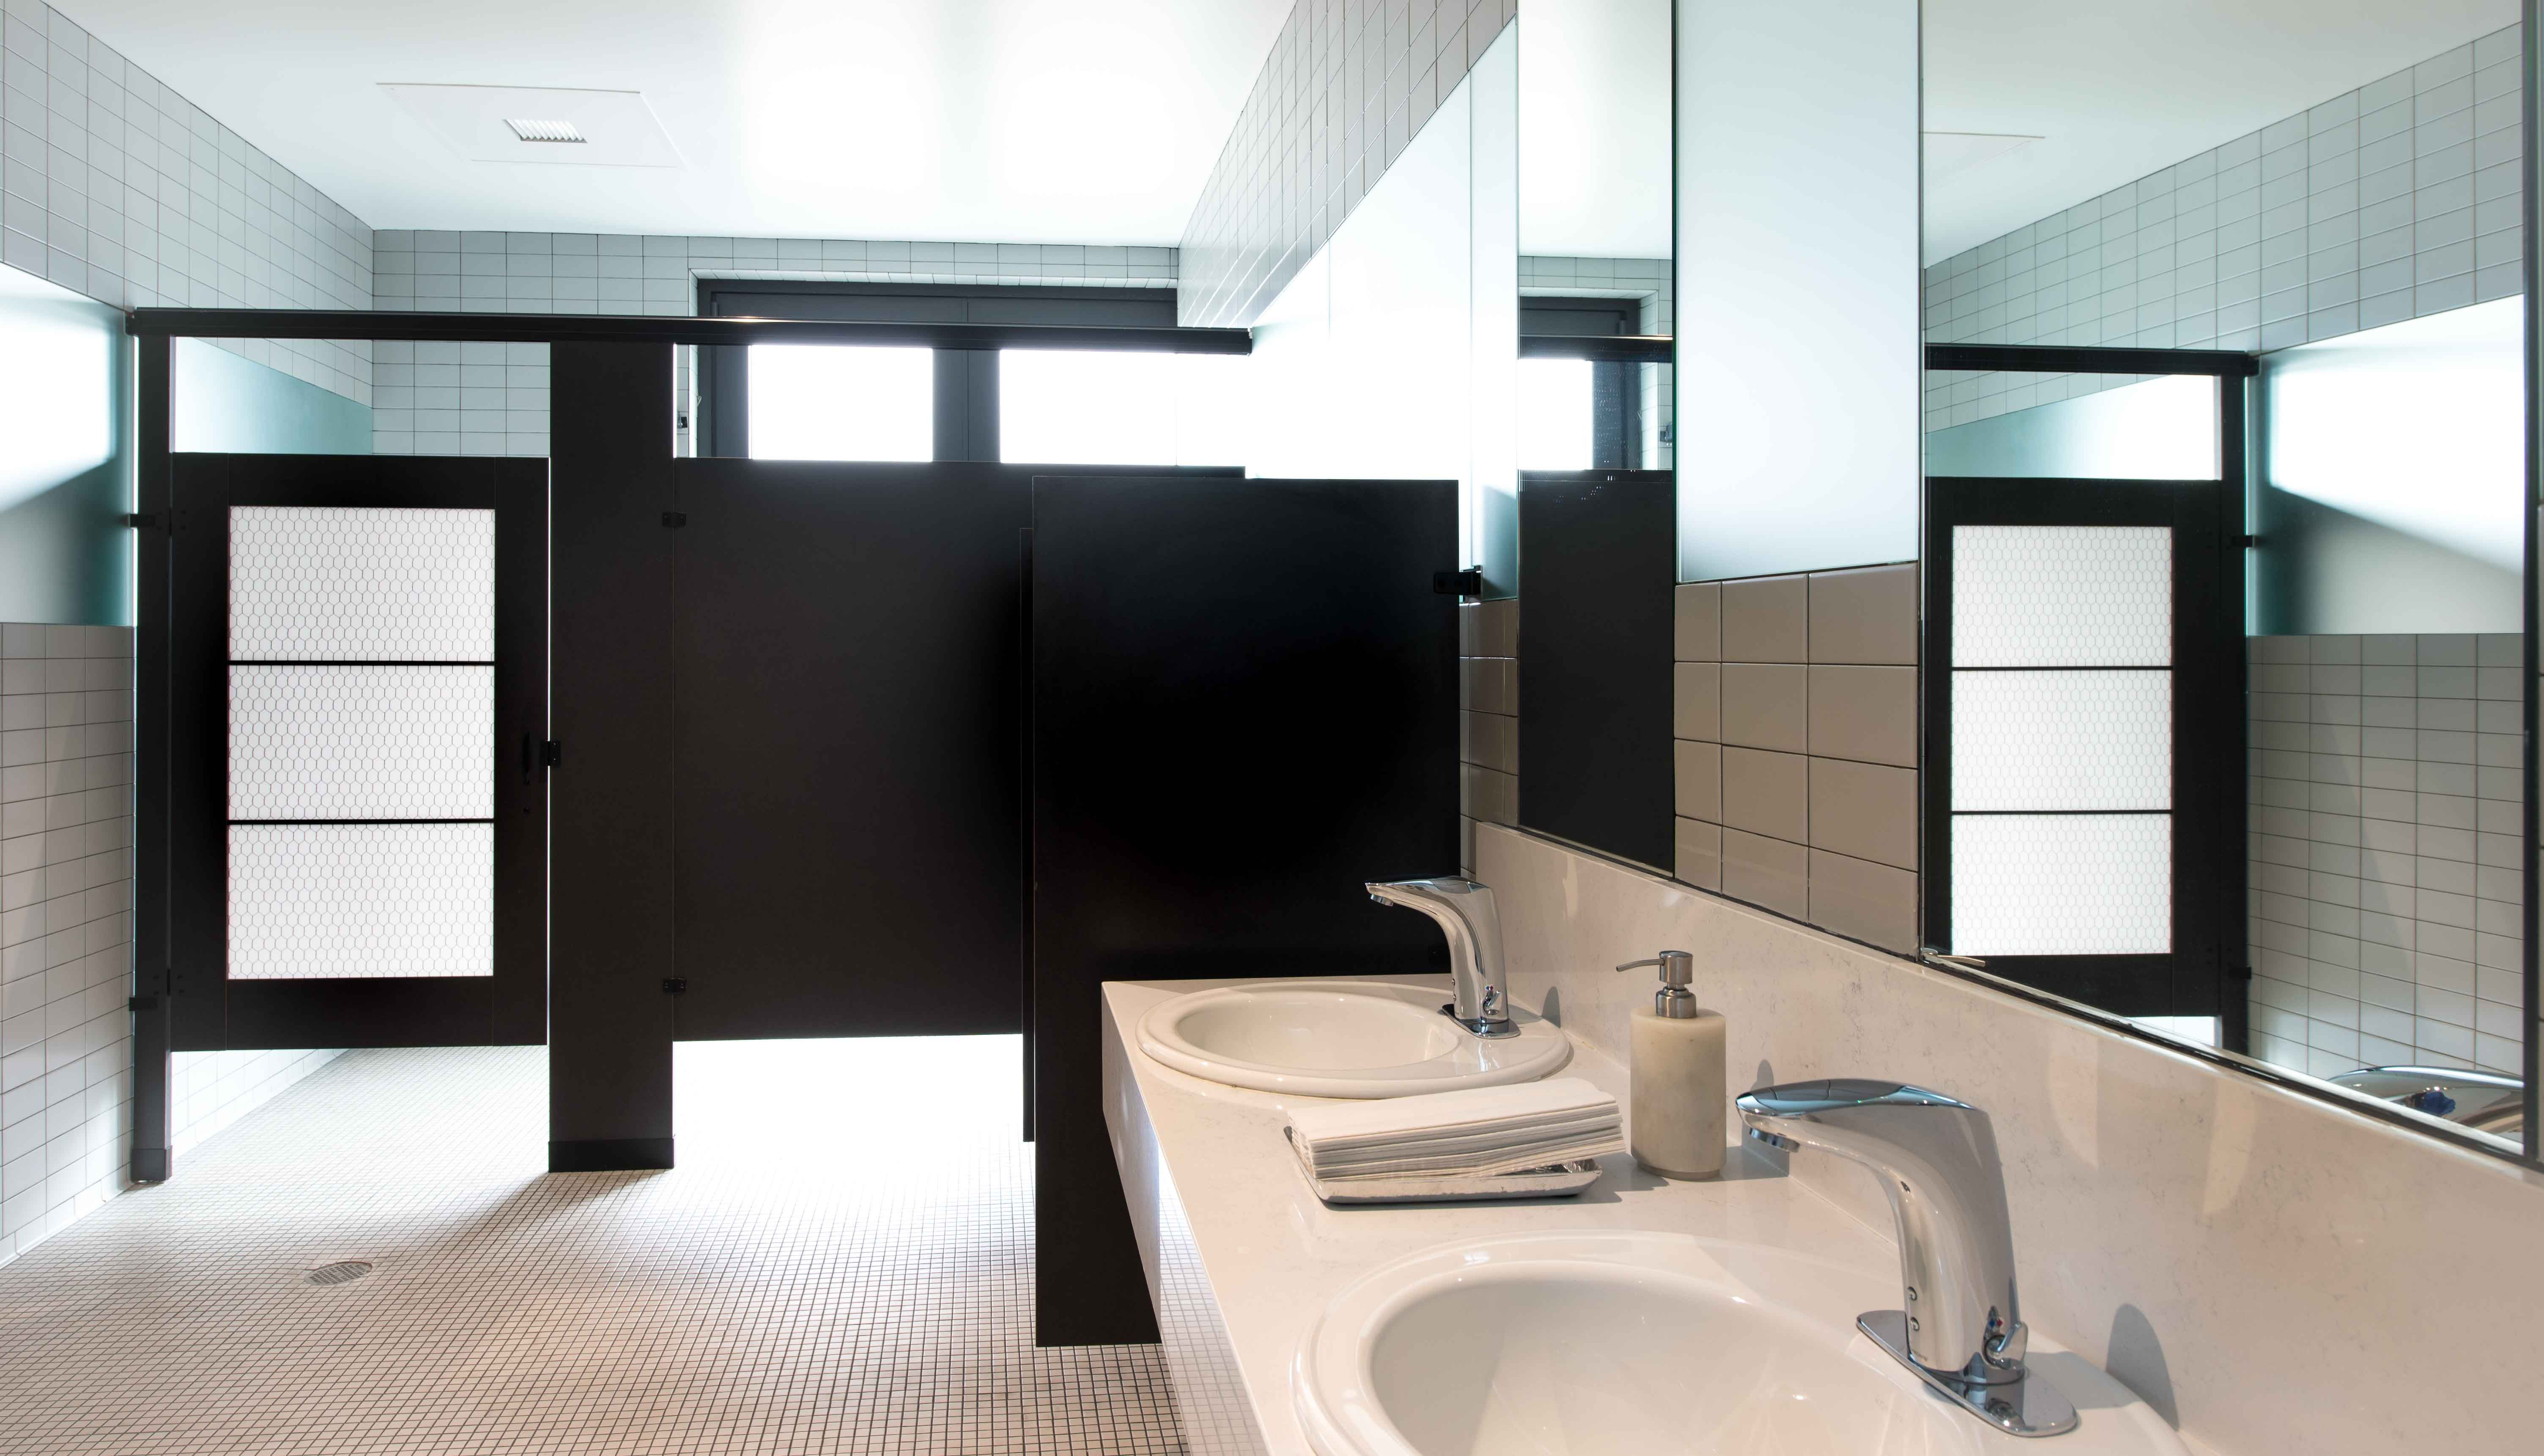 Ironwood Manufacturing laminate toilet partitions with engraved Door